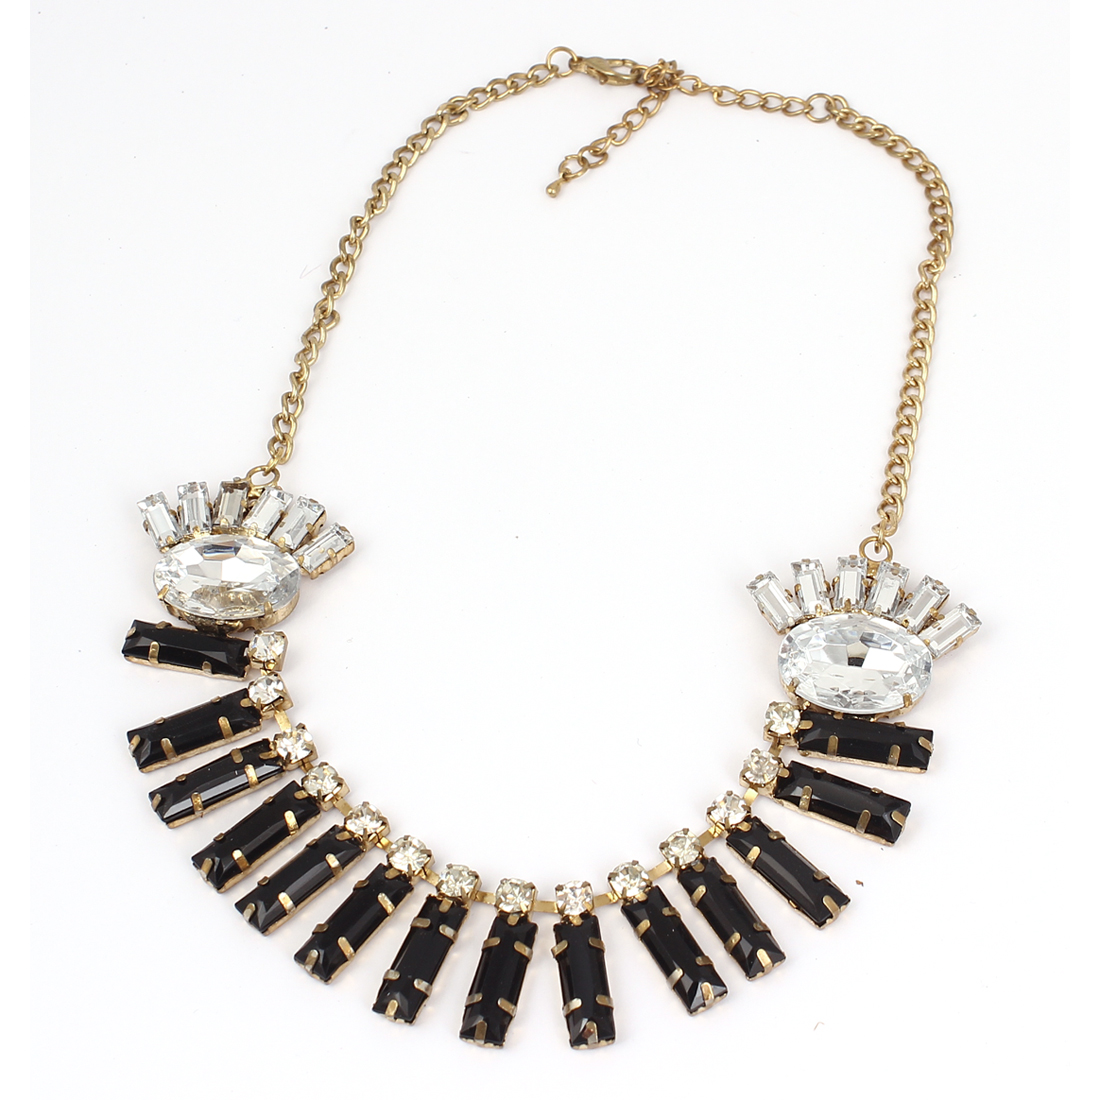 Lady Neckwear Lobster Clasp Black Rectangle Faceted Beads Clear Faux Crystal Pendant Chunky Collar Chain Bib Necklace Gold Tone